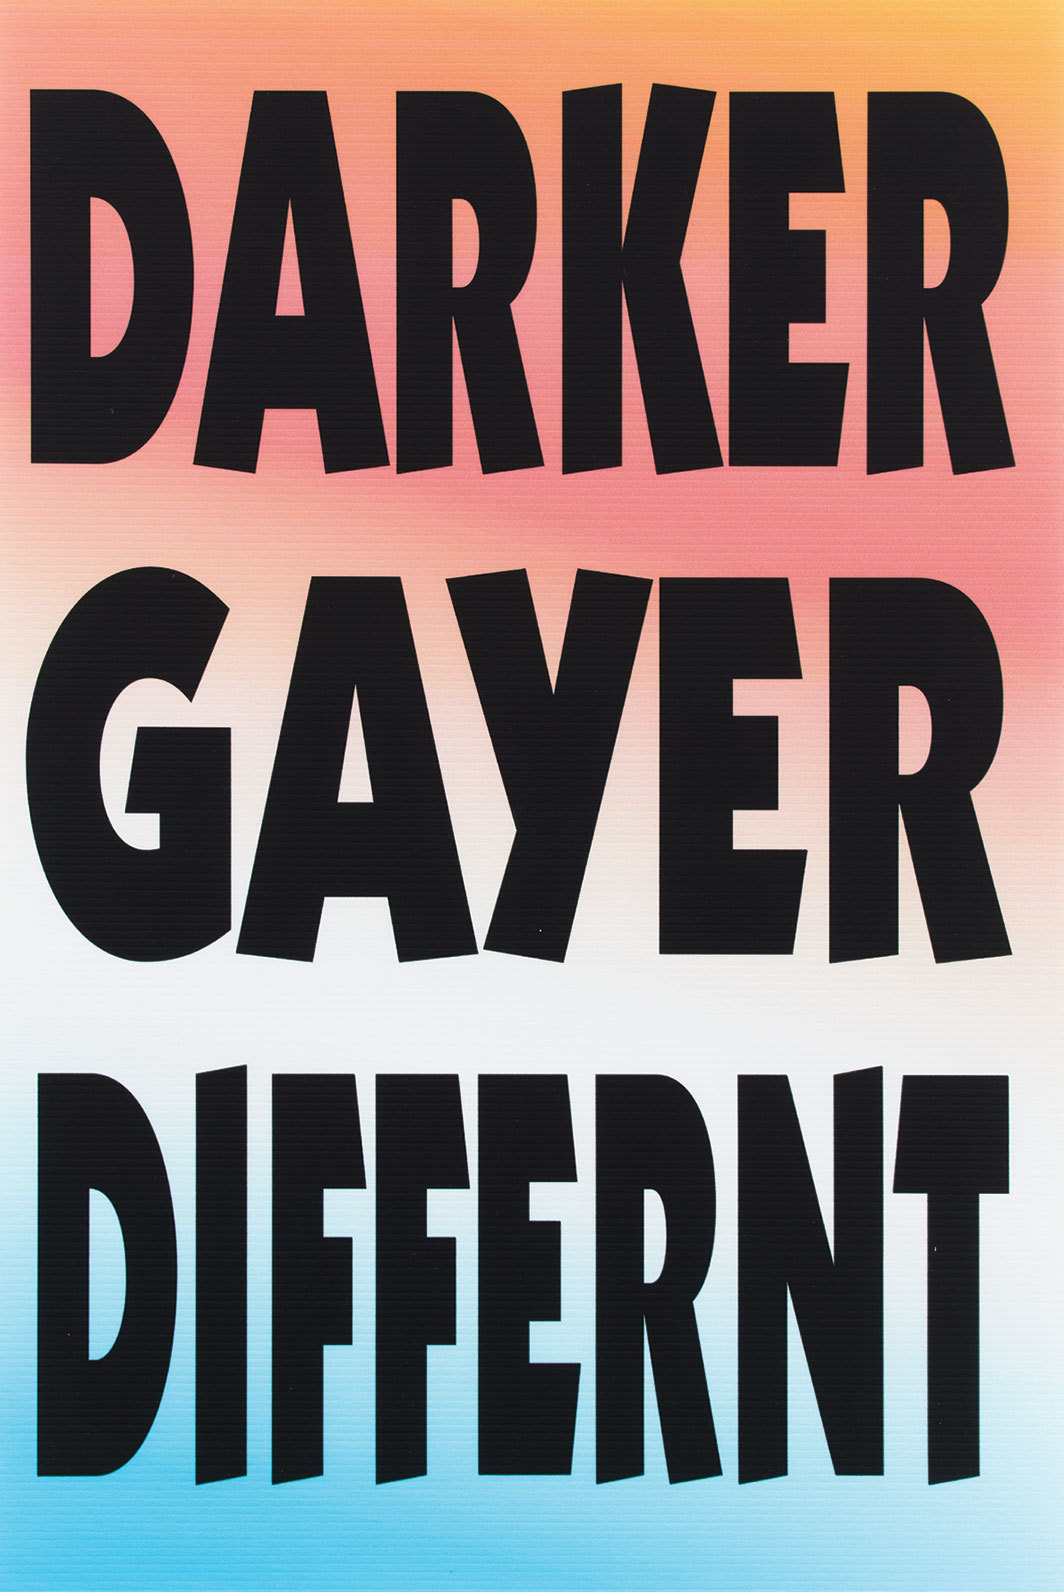 "*Paul Chan, Darker, Gayer, Differnt, 2018,* ink-jet print, 36 × 24""."